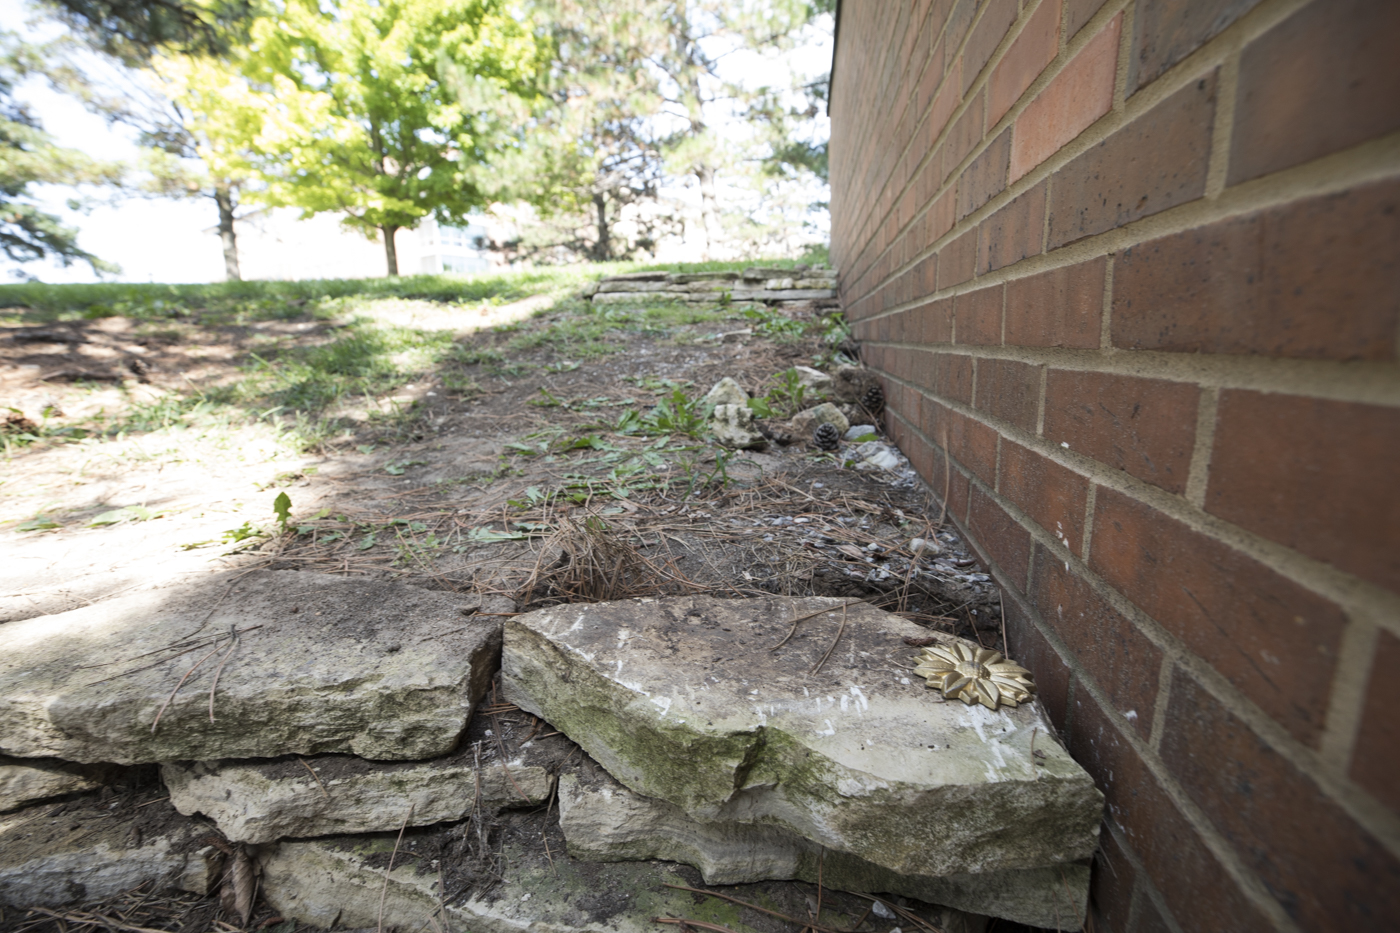 The+Sunflower+Medallion+was+between+this+rock+and+the+brick+wall.+Pine+needles+covered+it.+